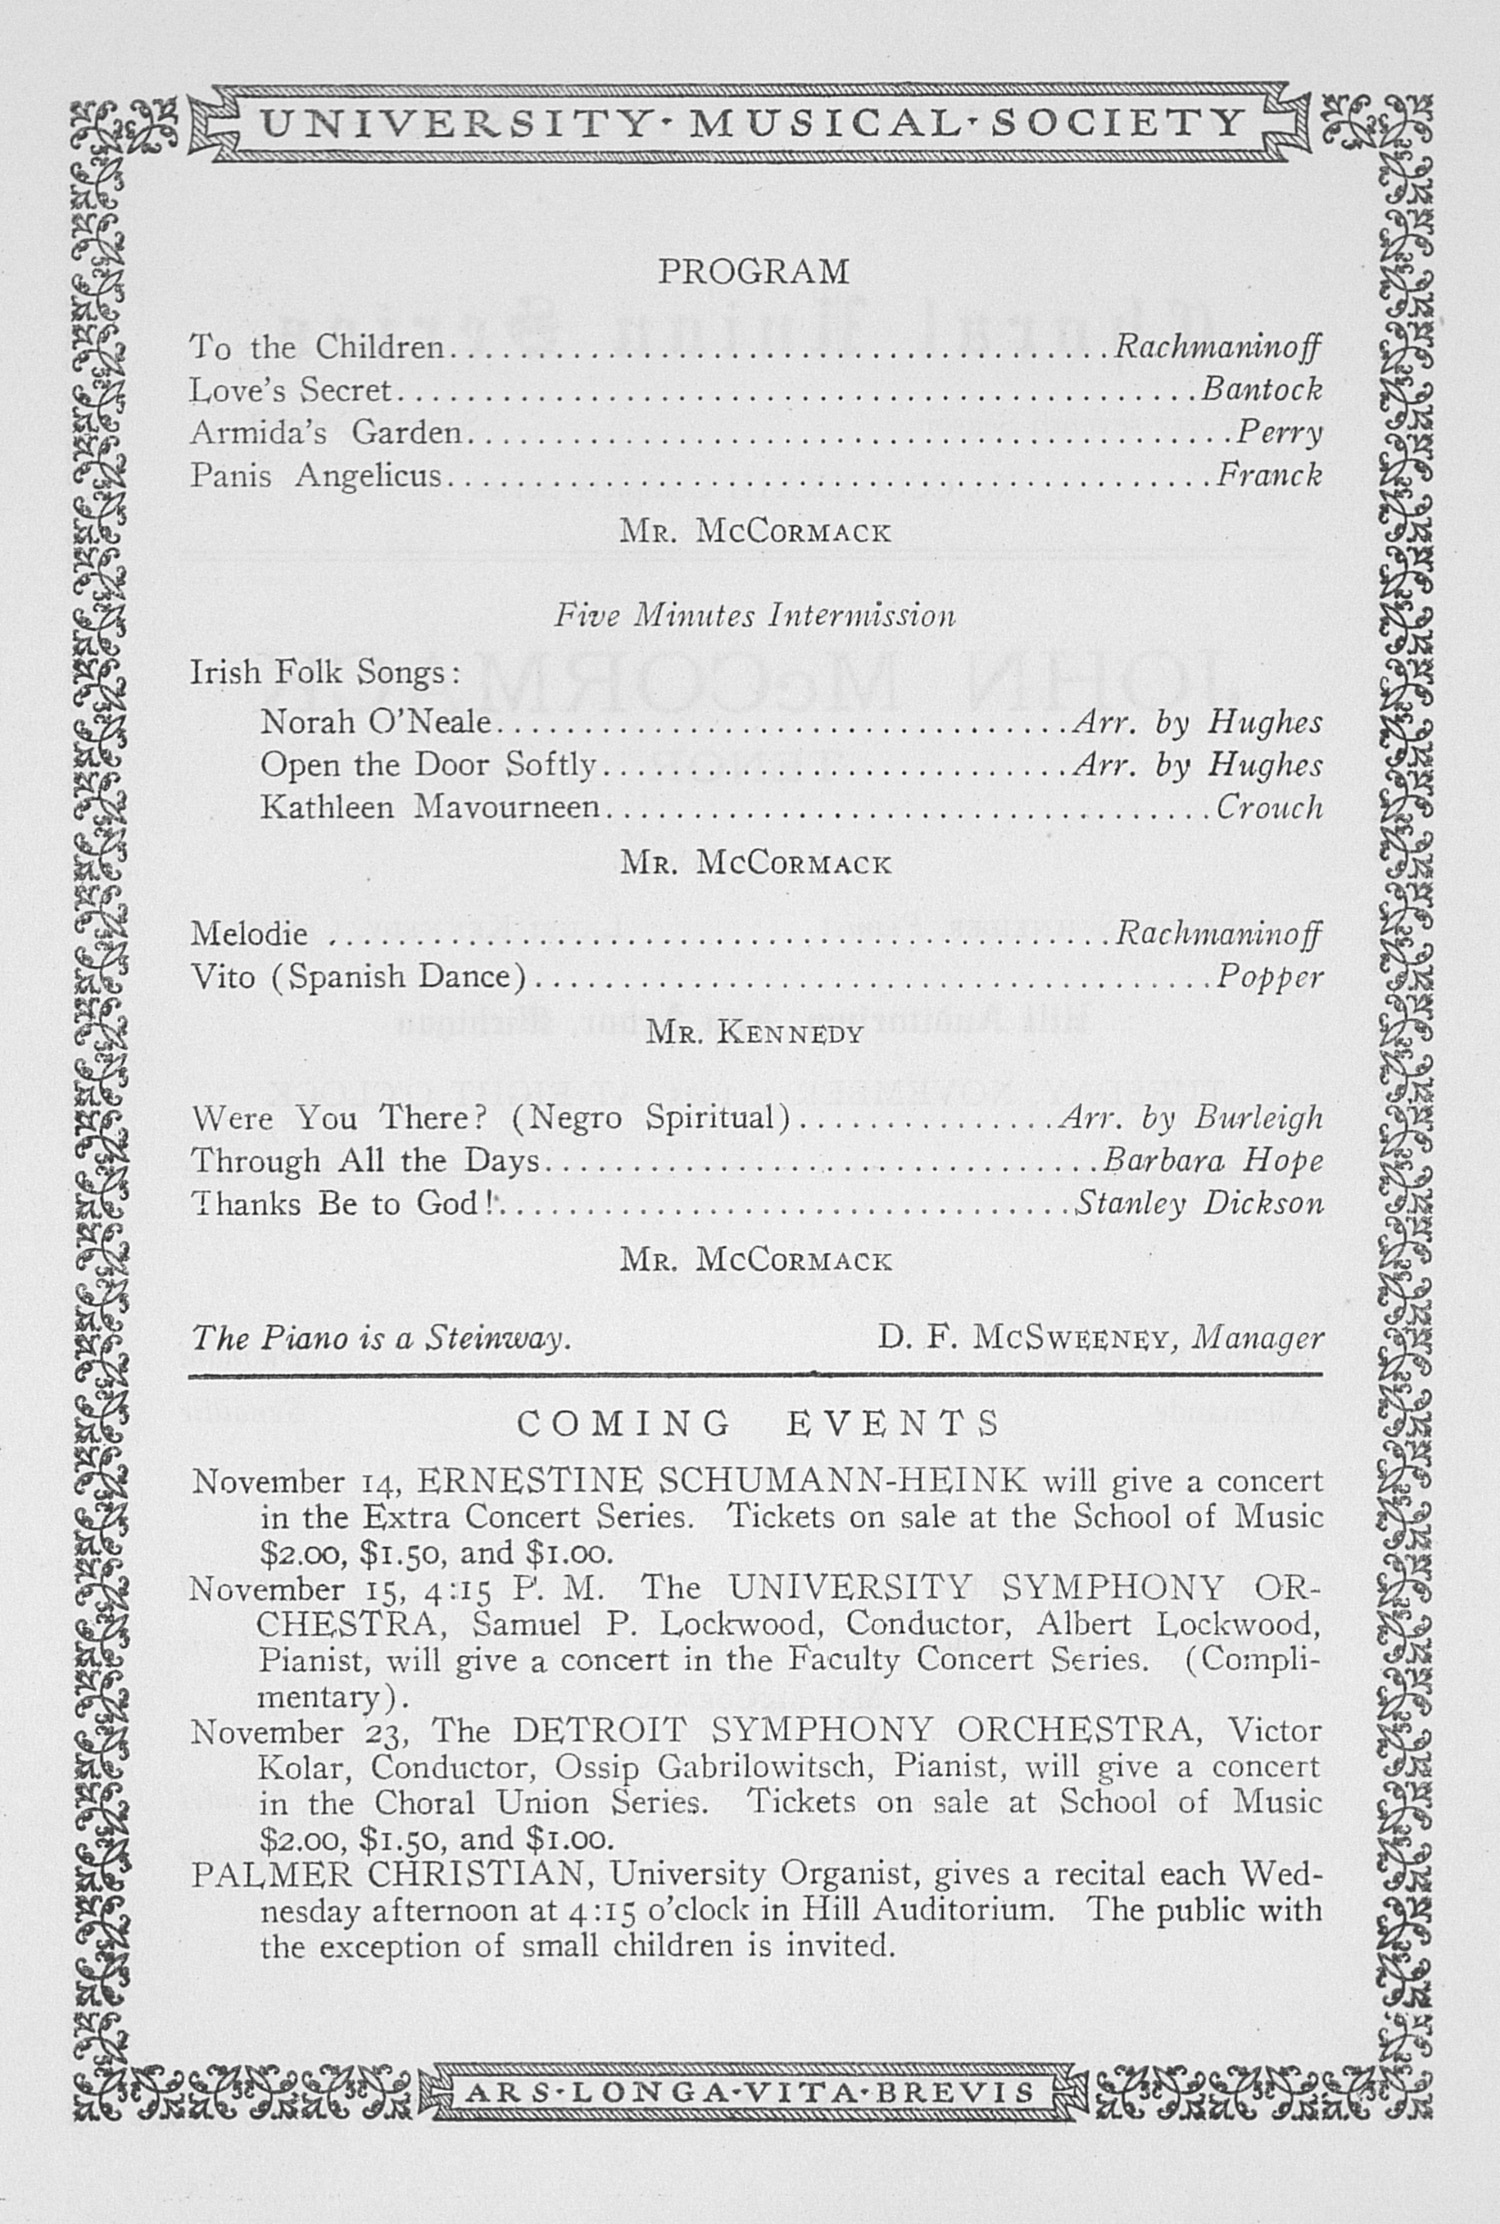 UMS Concert Program, November 3, 1925: Choral Union Series -- John Mccormack image